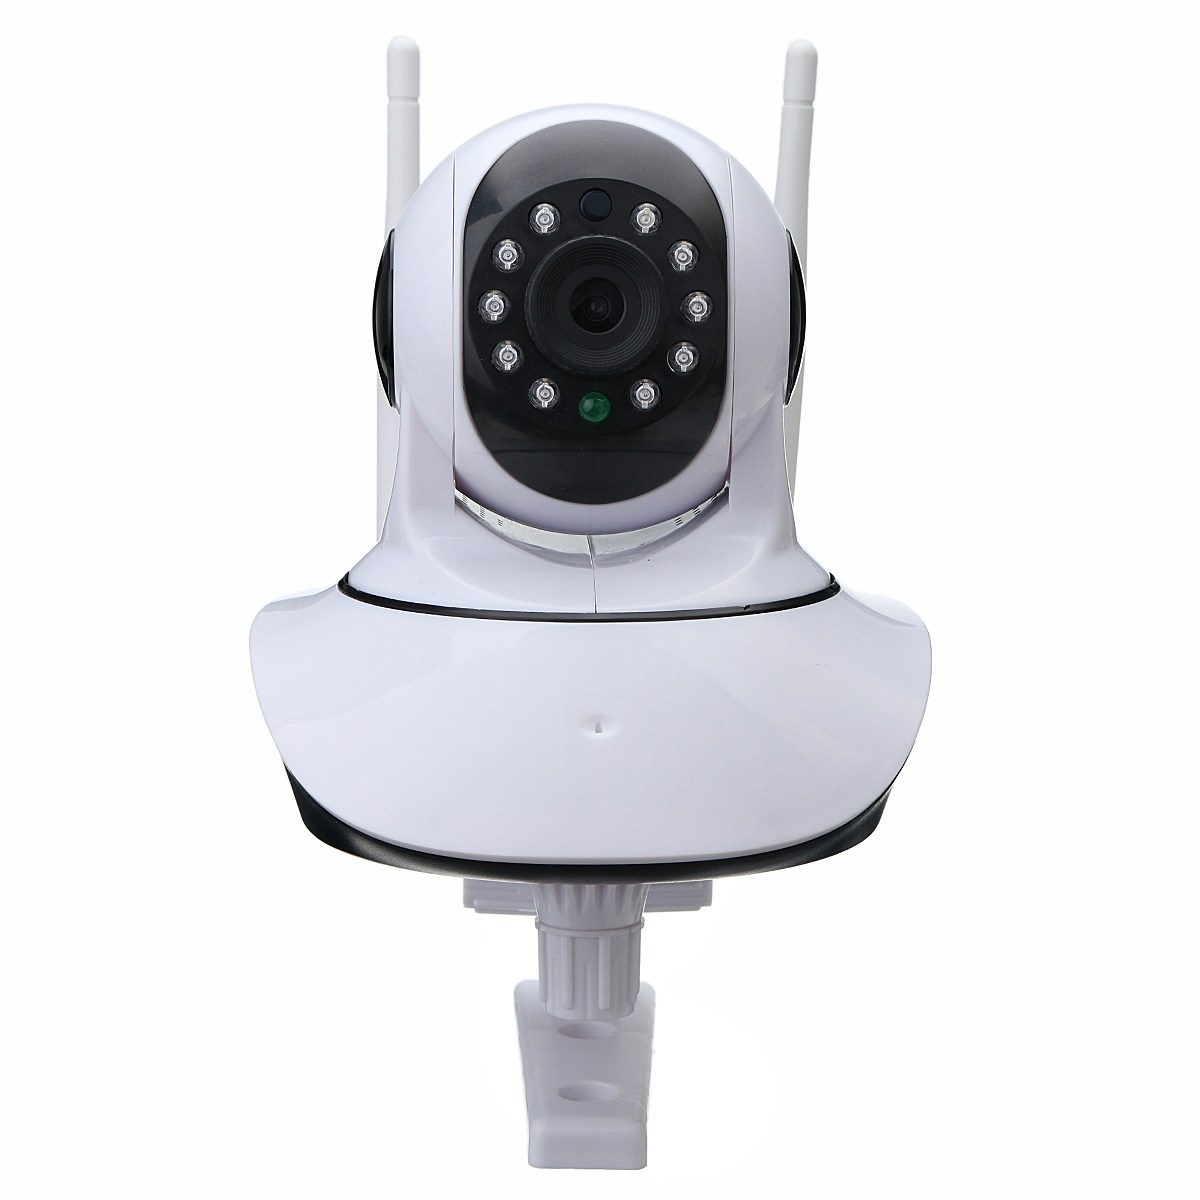 NEW Safurance 720P Pan Tilt Home Security IP Camera  Wireless Wifi Network Night Vision Webcam Home Security<br>